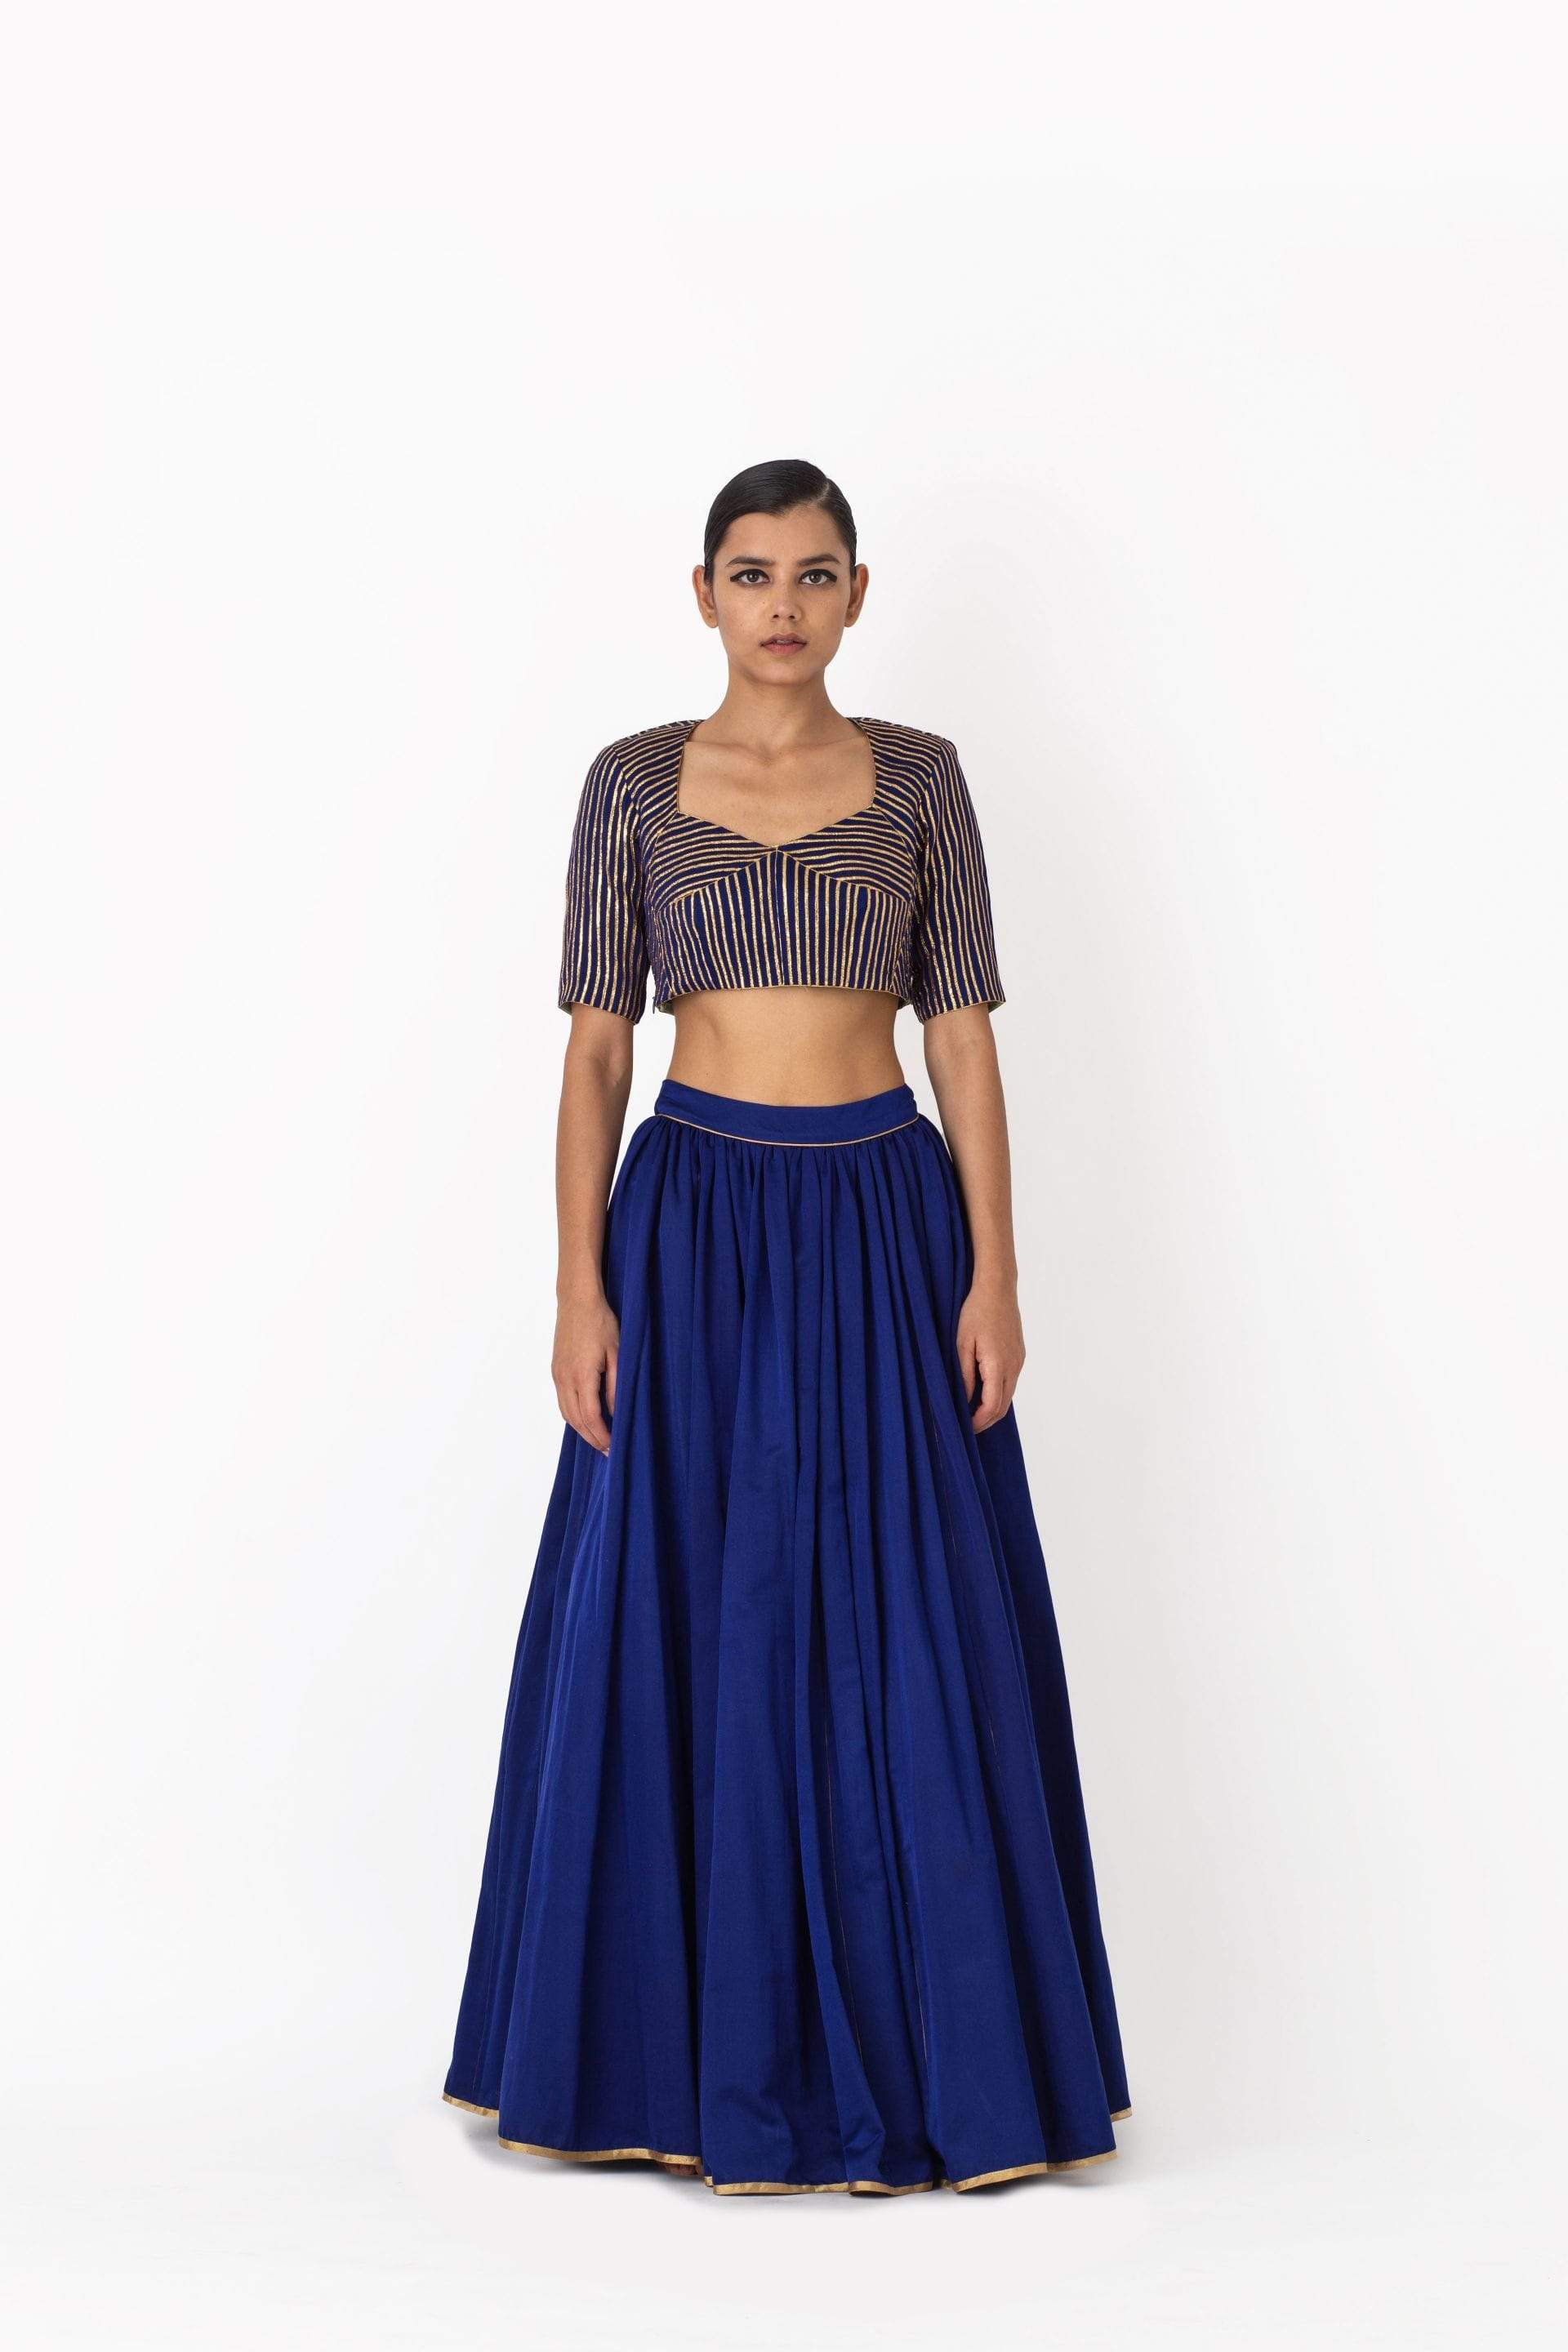 Raw Mango Light Lehengas Sindoora & Ruhi lehenga set